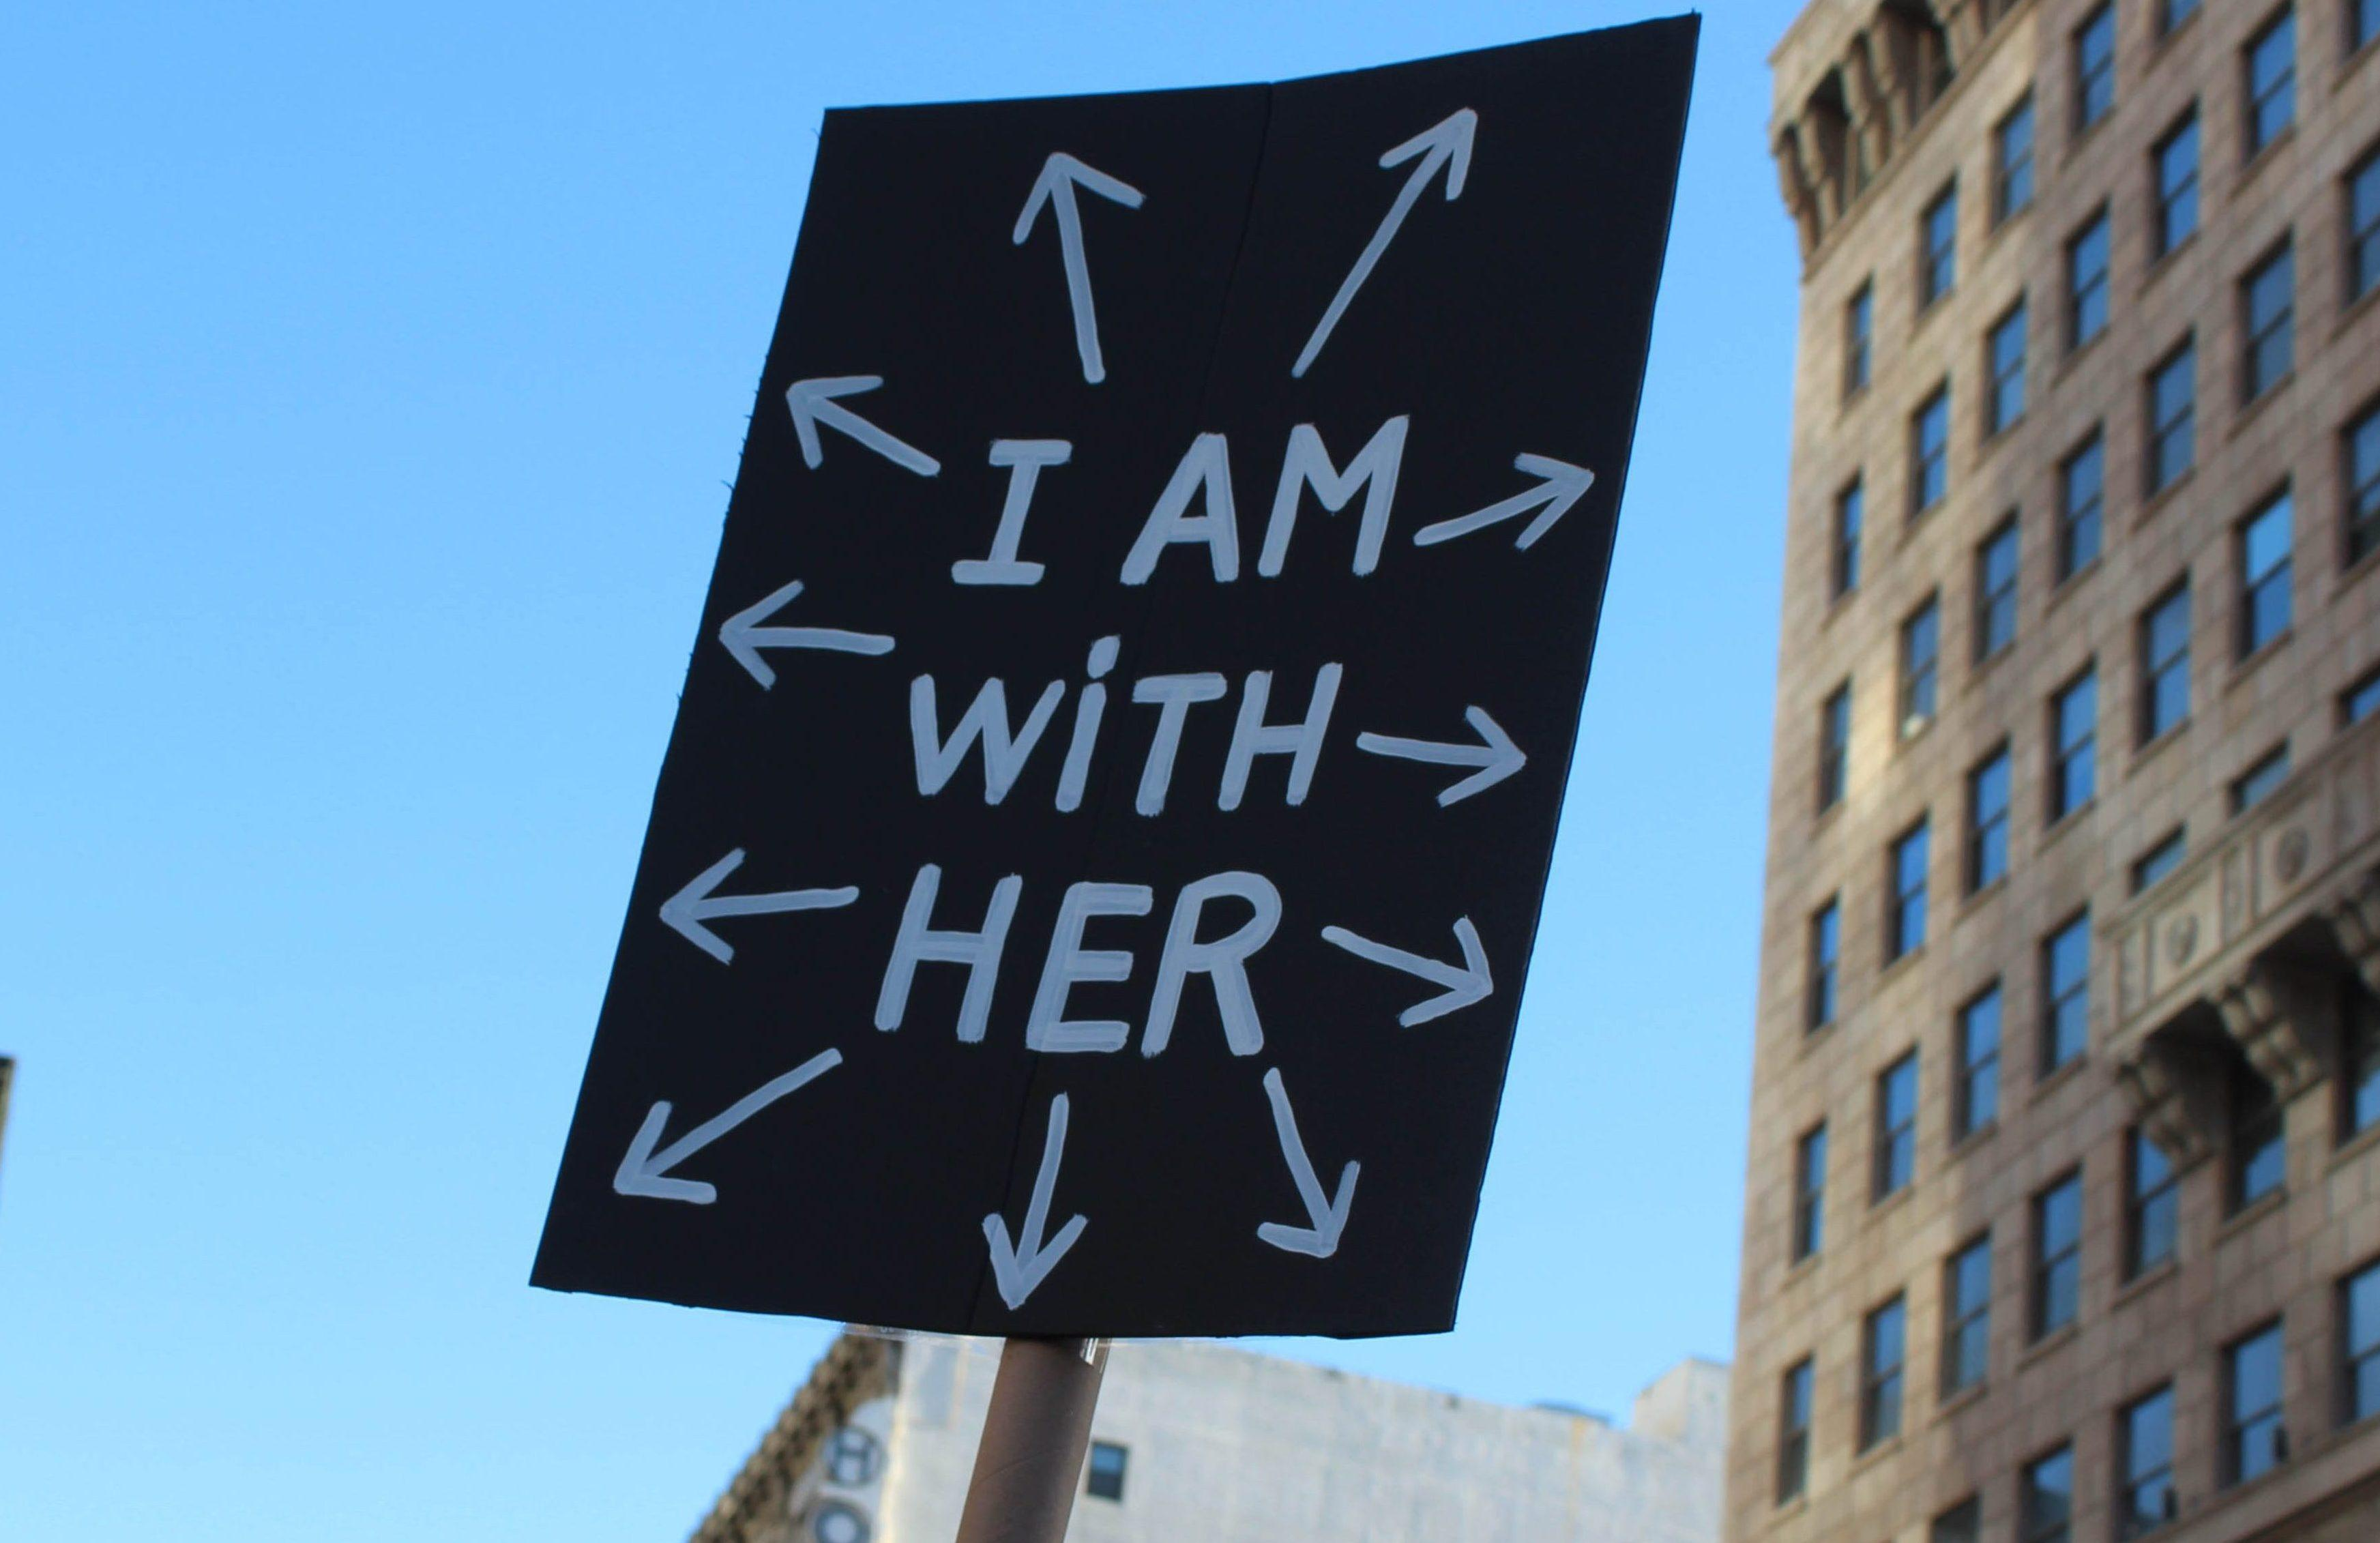 Poster from the Women's March. Photo by Kaya Ortega.